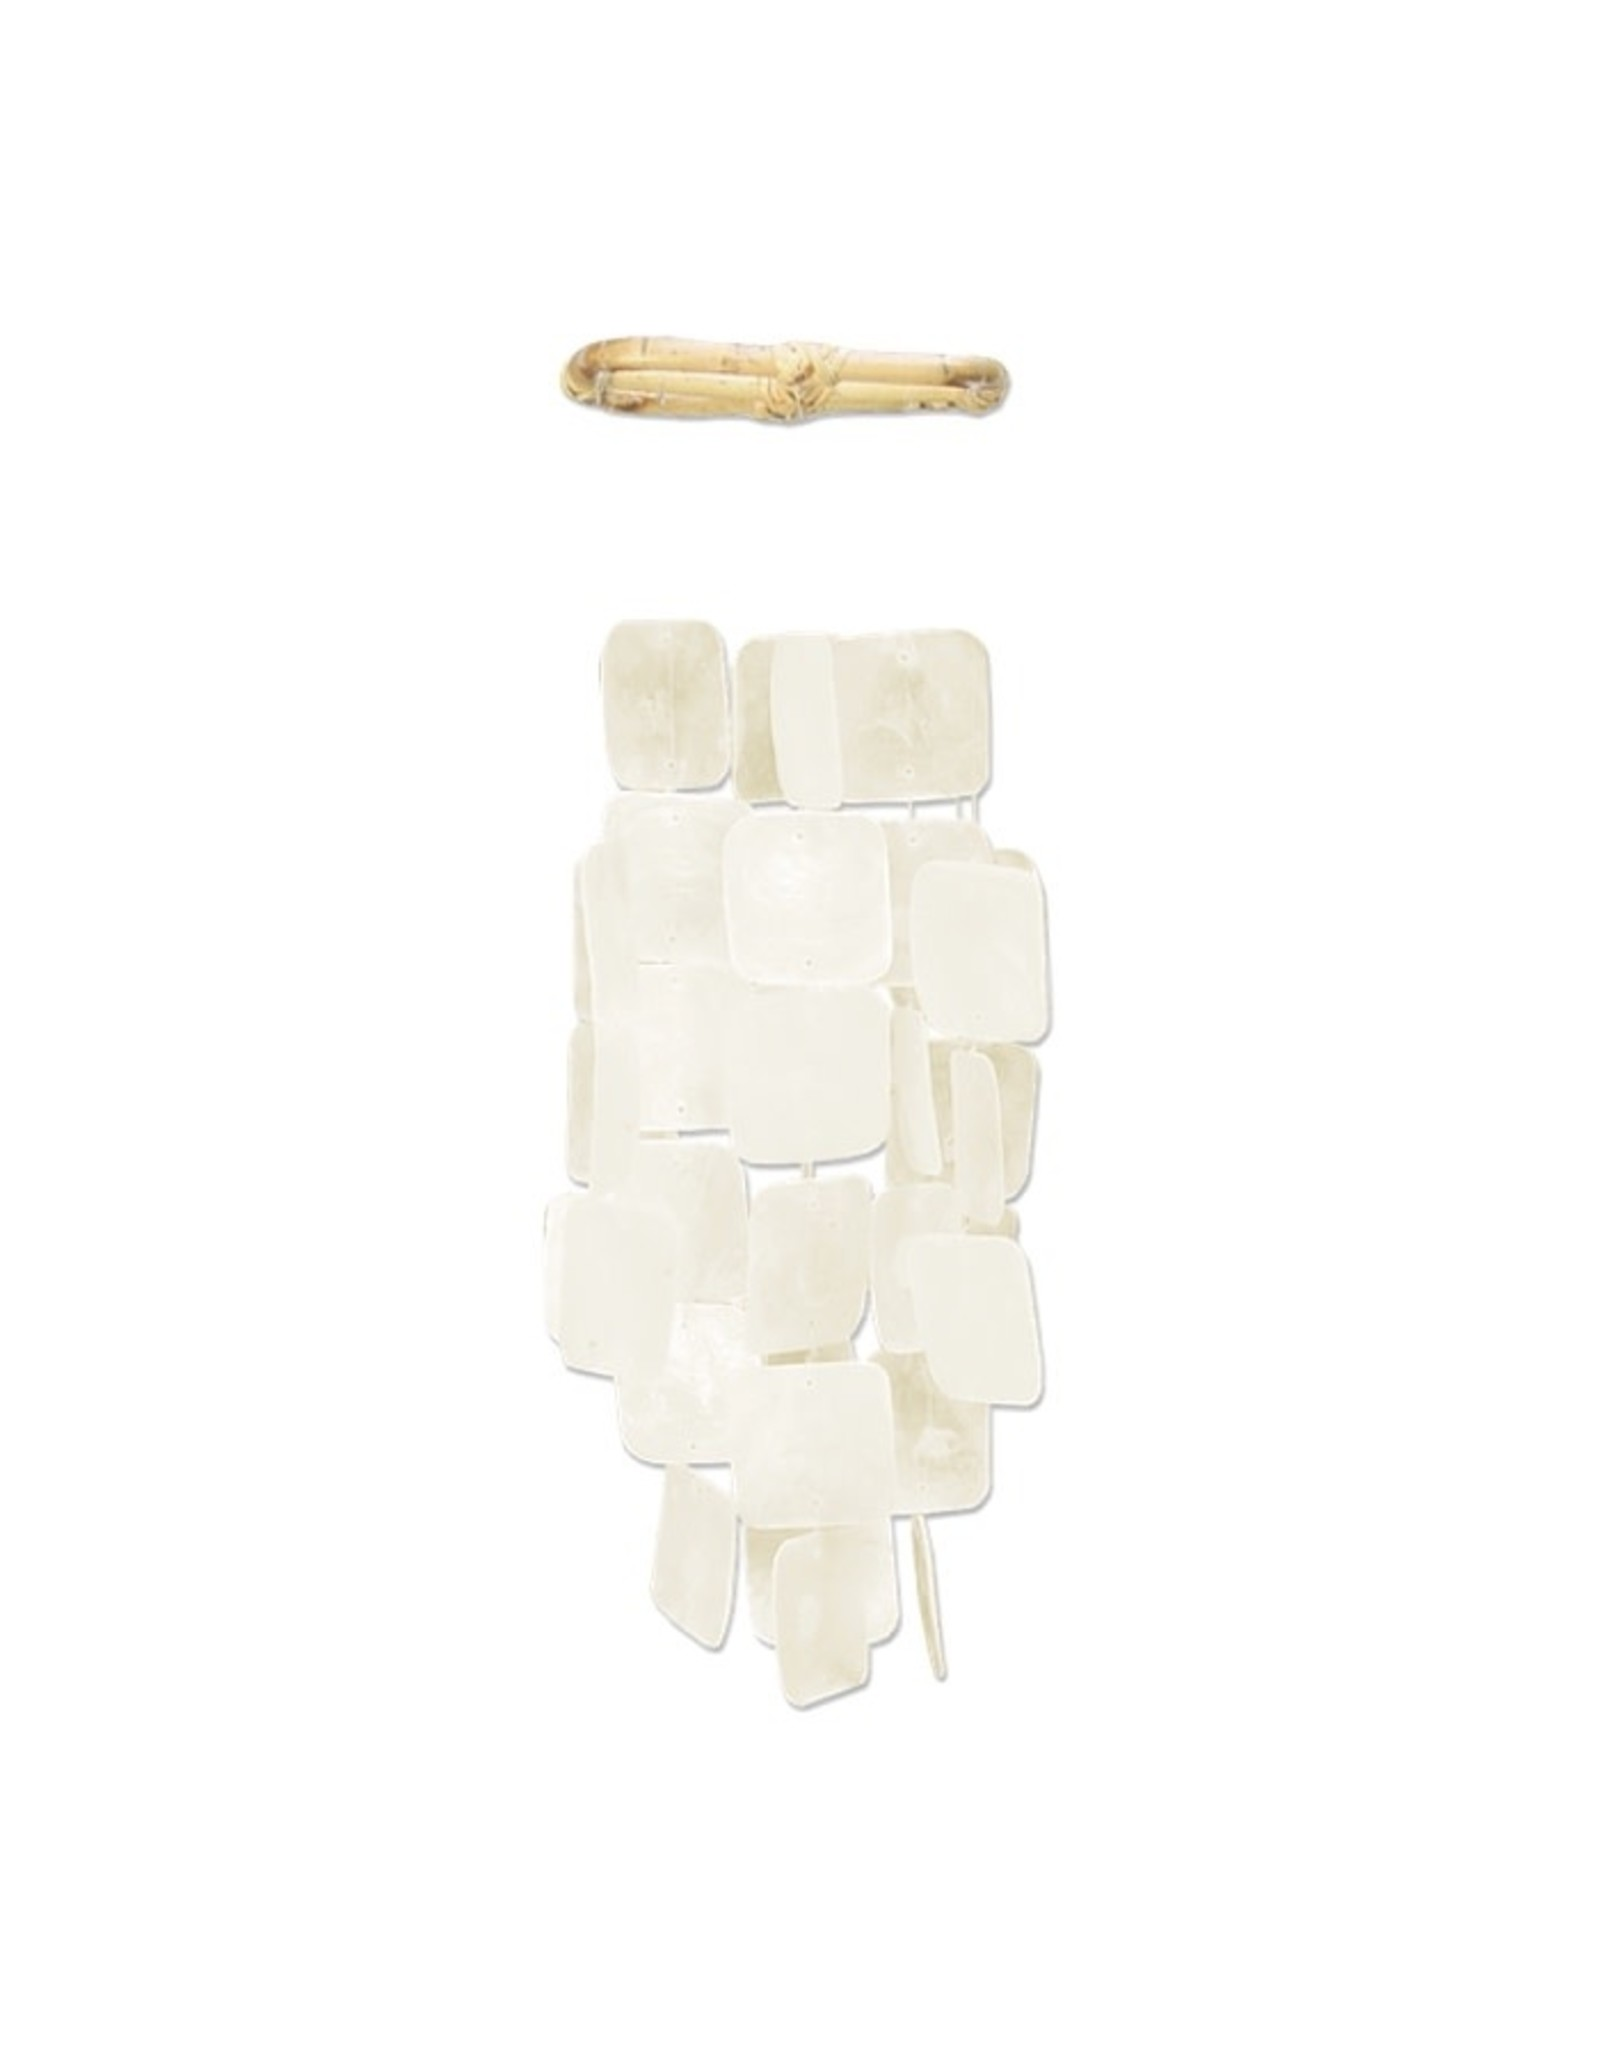 Fair Trade Winds Small Square Capiz Wind Chime, White. Indonesia